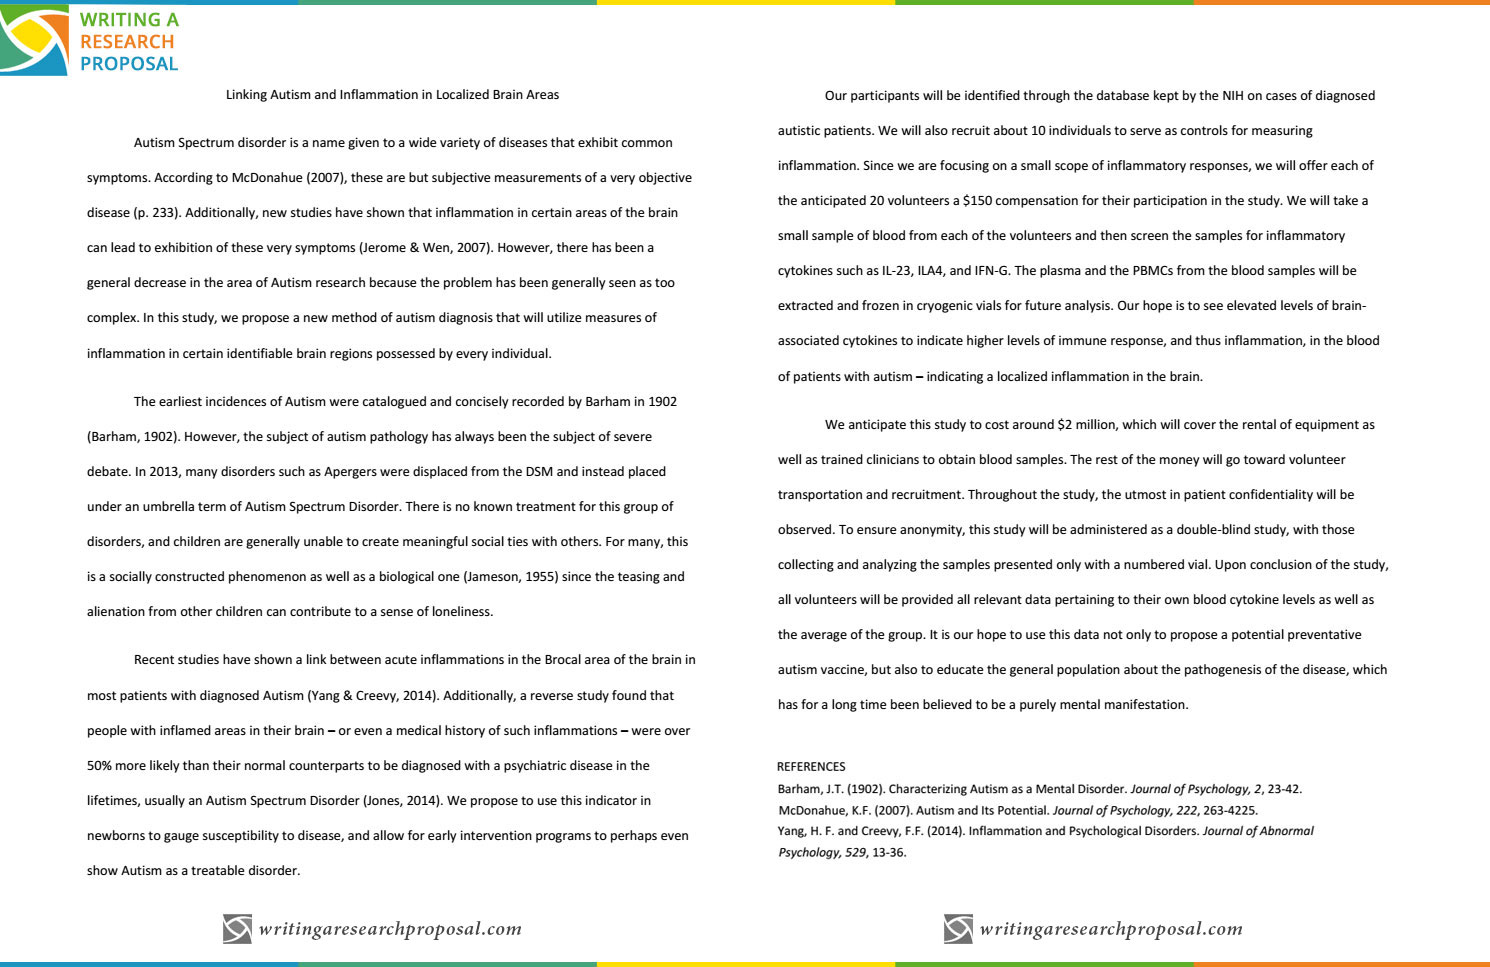 006 Autistic Disorder Apa Style Paper Research Phenomenal Autism On And Early Intervention Pdf Example About Full